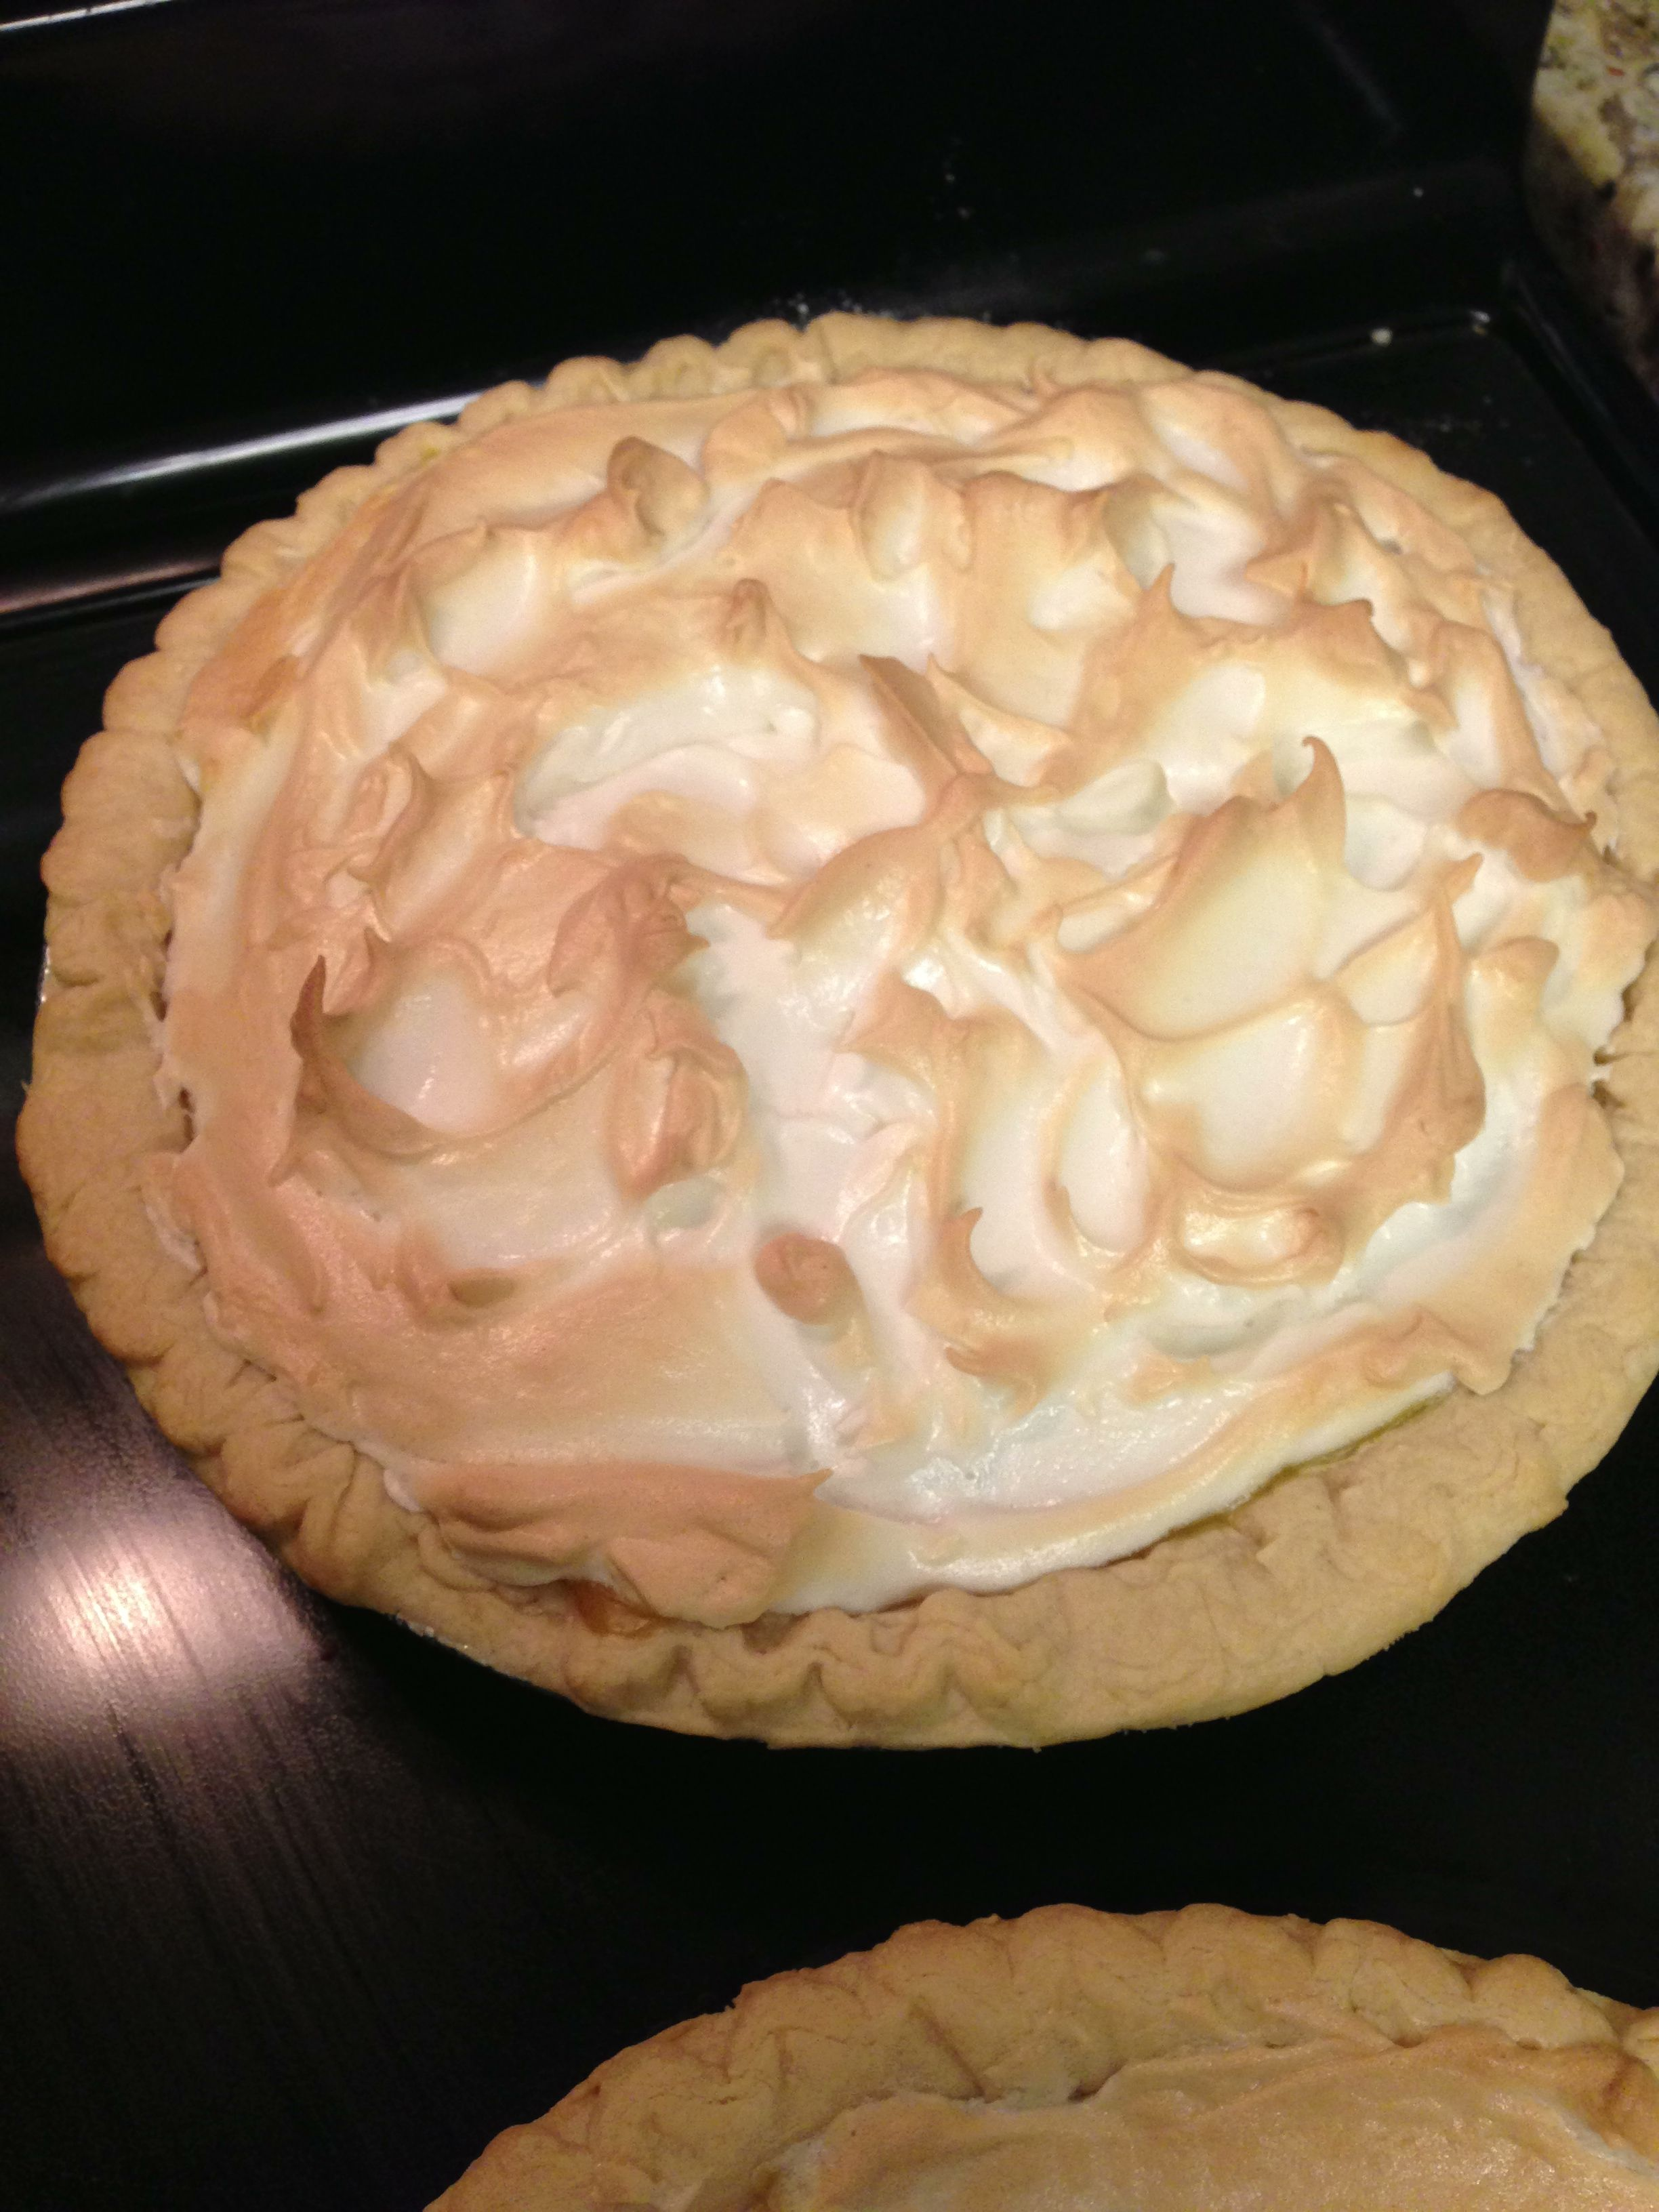 Homemade lemon meringue